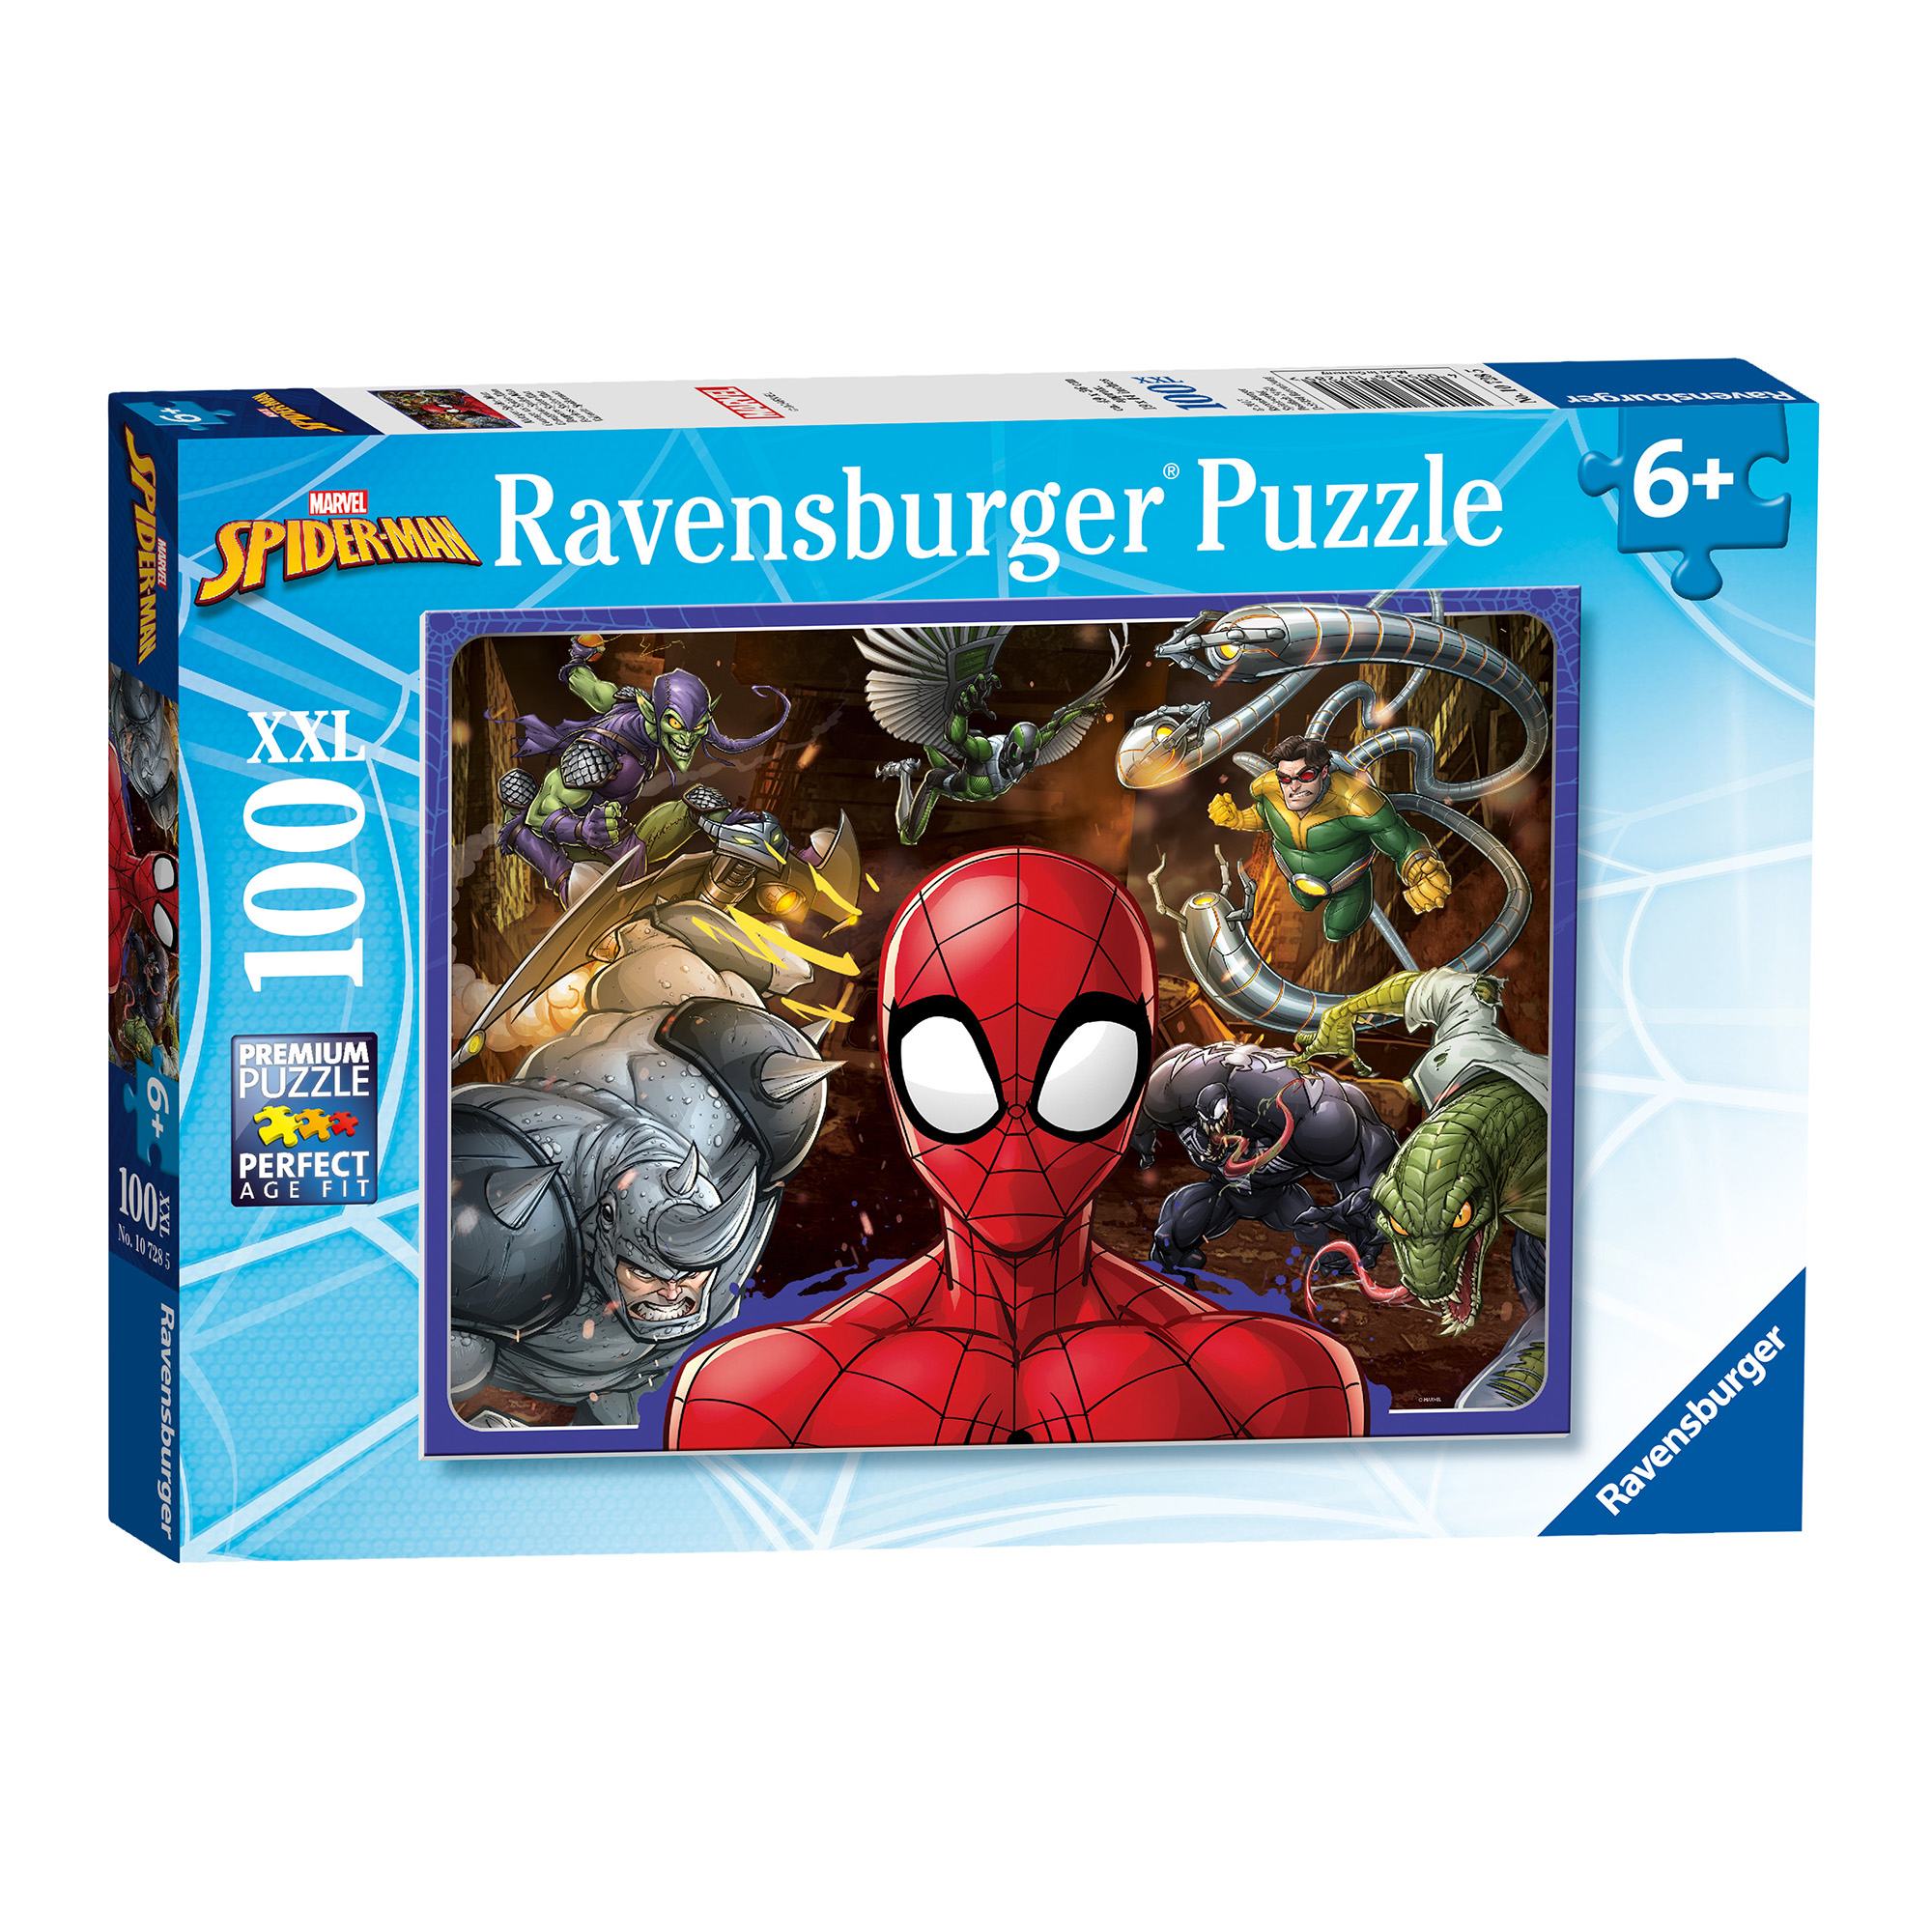 Ravensburger Marvel Spider-Man 100 Piece XXL Puzzle